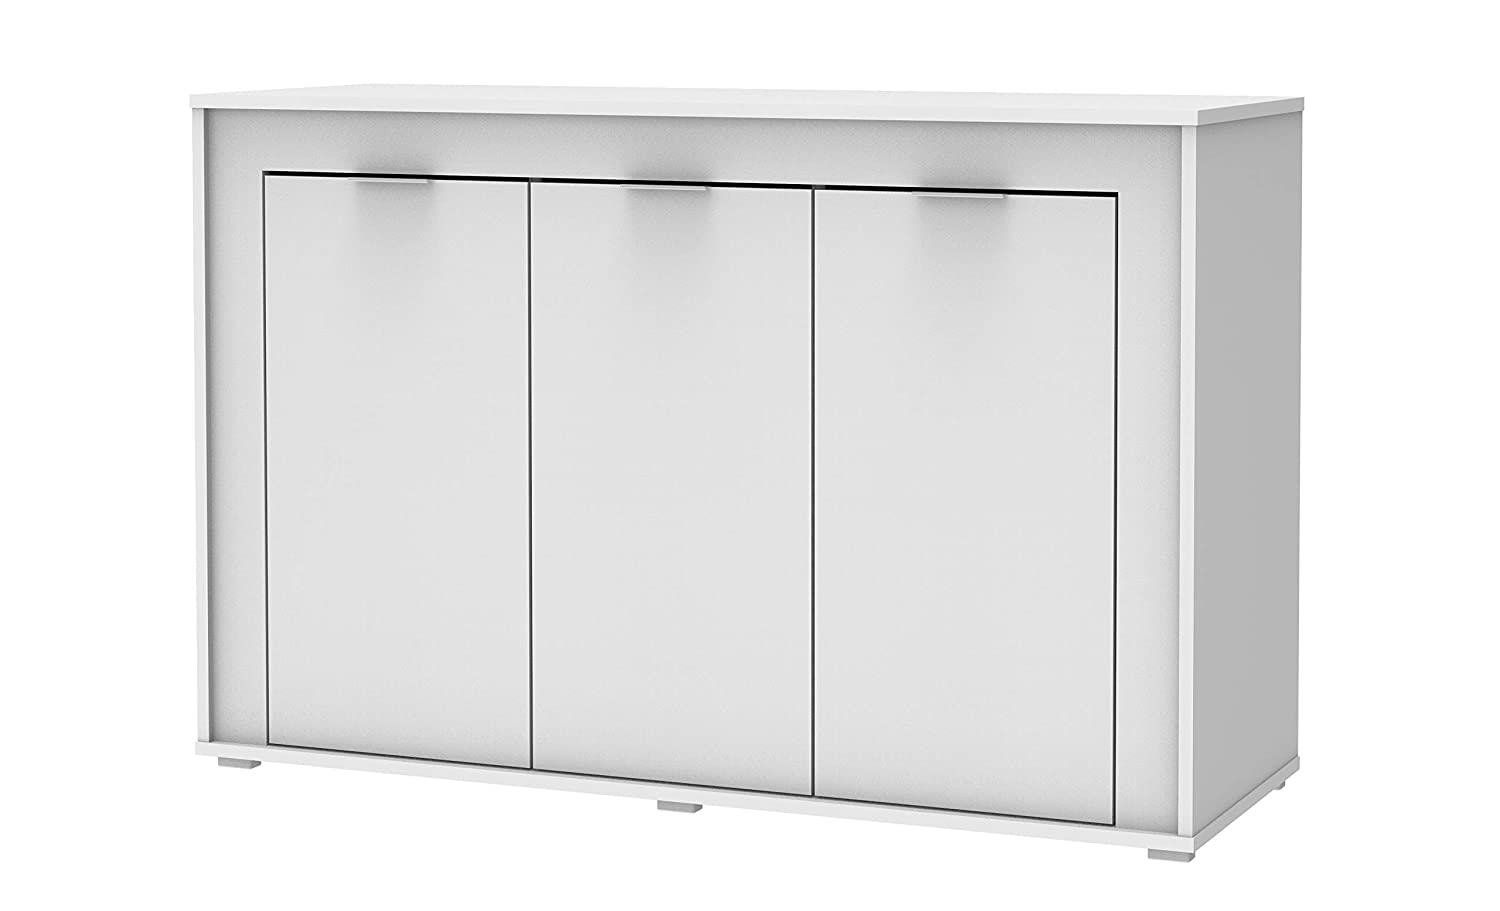 Madesa Sideboard Buffet Living Room Cabinet 6 Shelf 3 Cupboard Hallway Storage TV Stand (White) Riana